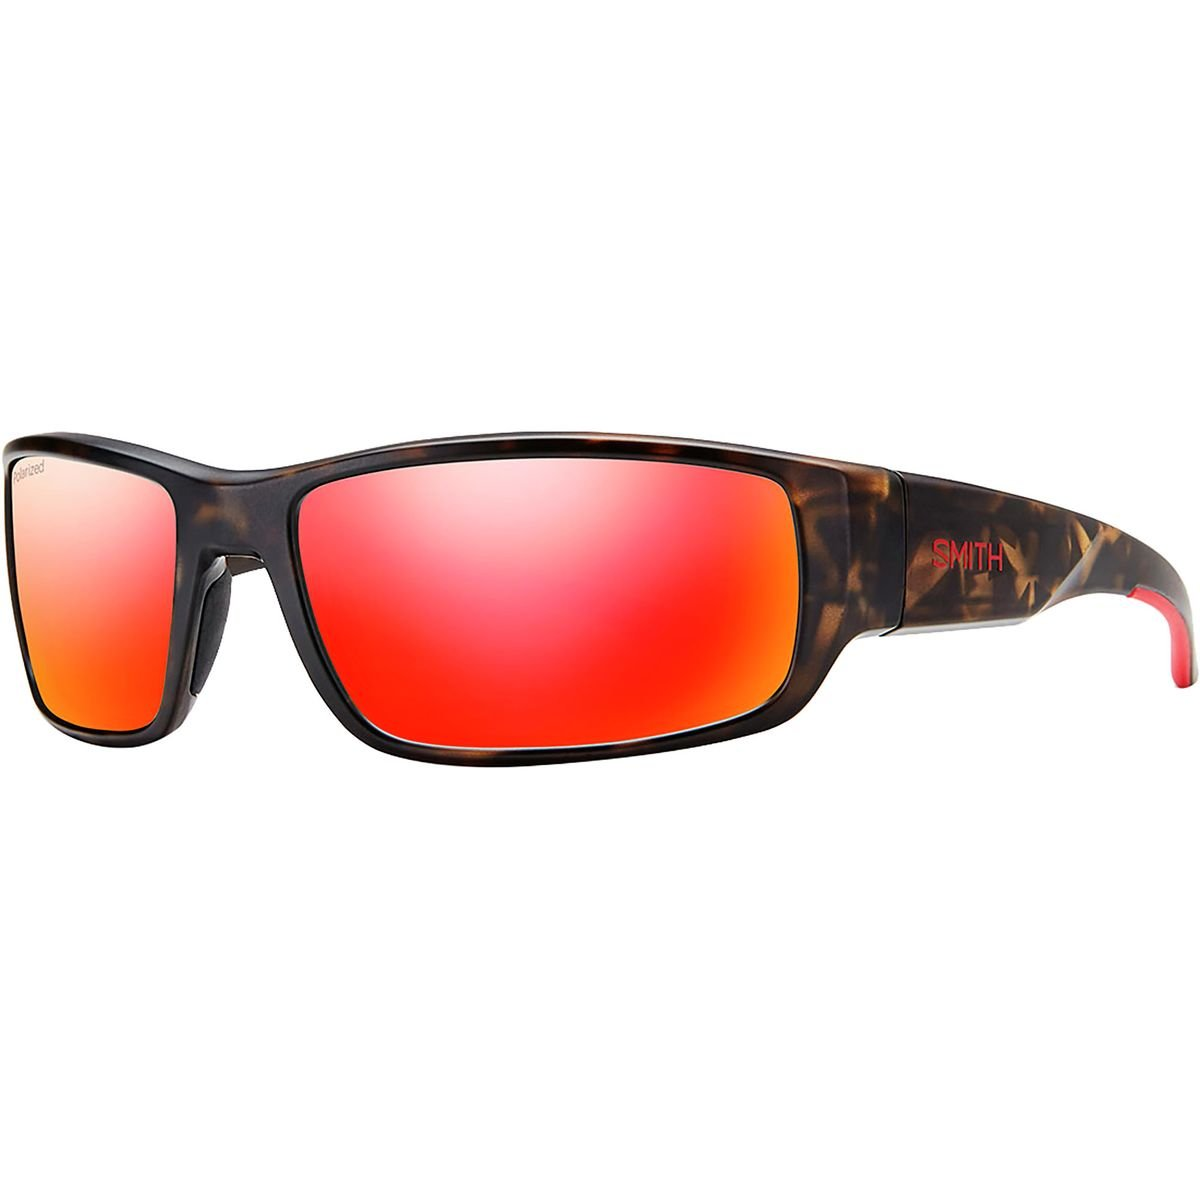 Smith Survey Polarized Sunglasses Matte Camo/Polarized Red Mirror, One Size - Men's